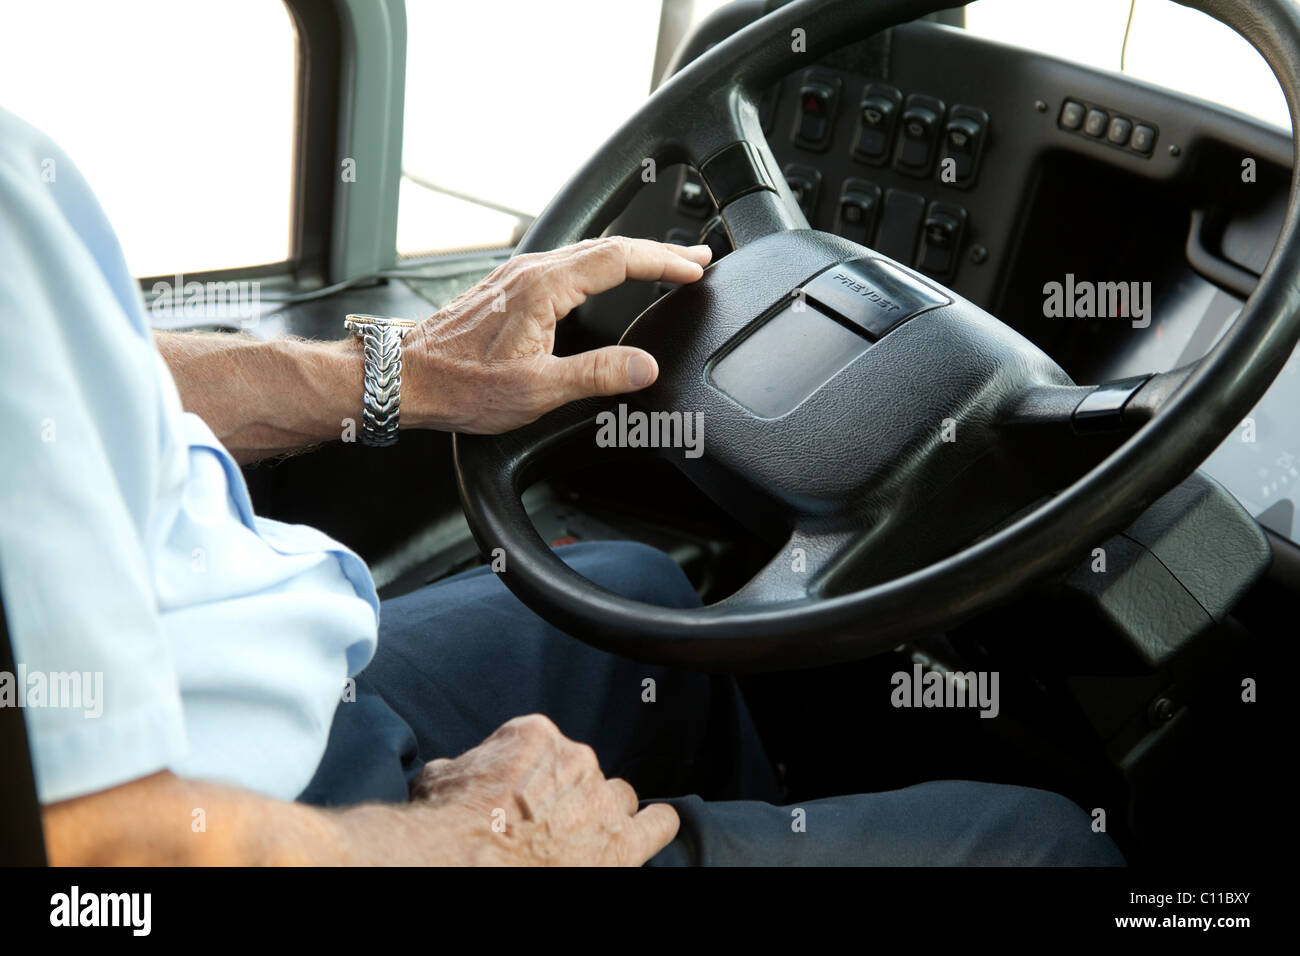 Bus driver with hands on the wheel in USA - Stock Image